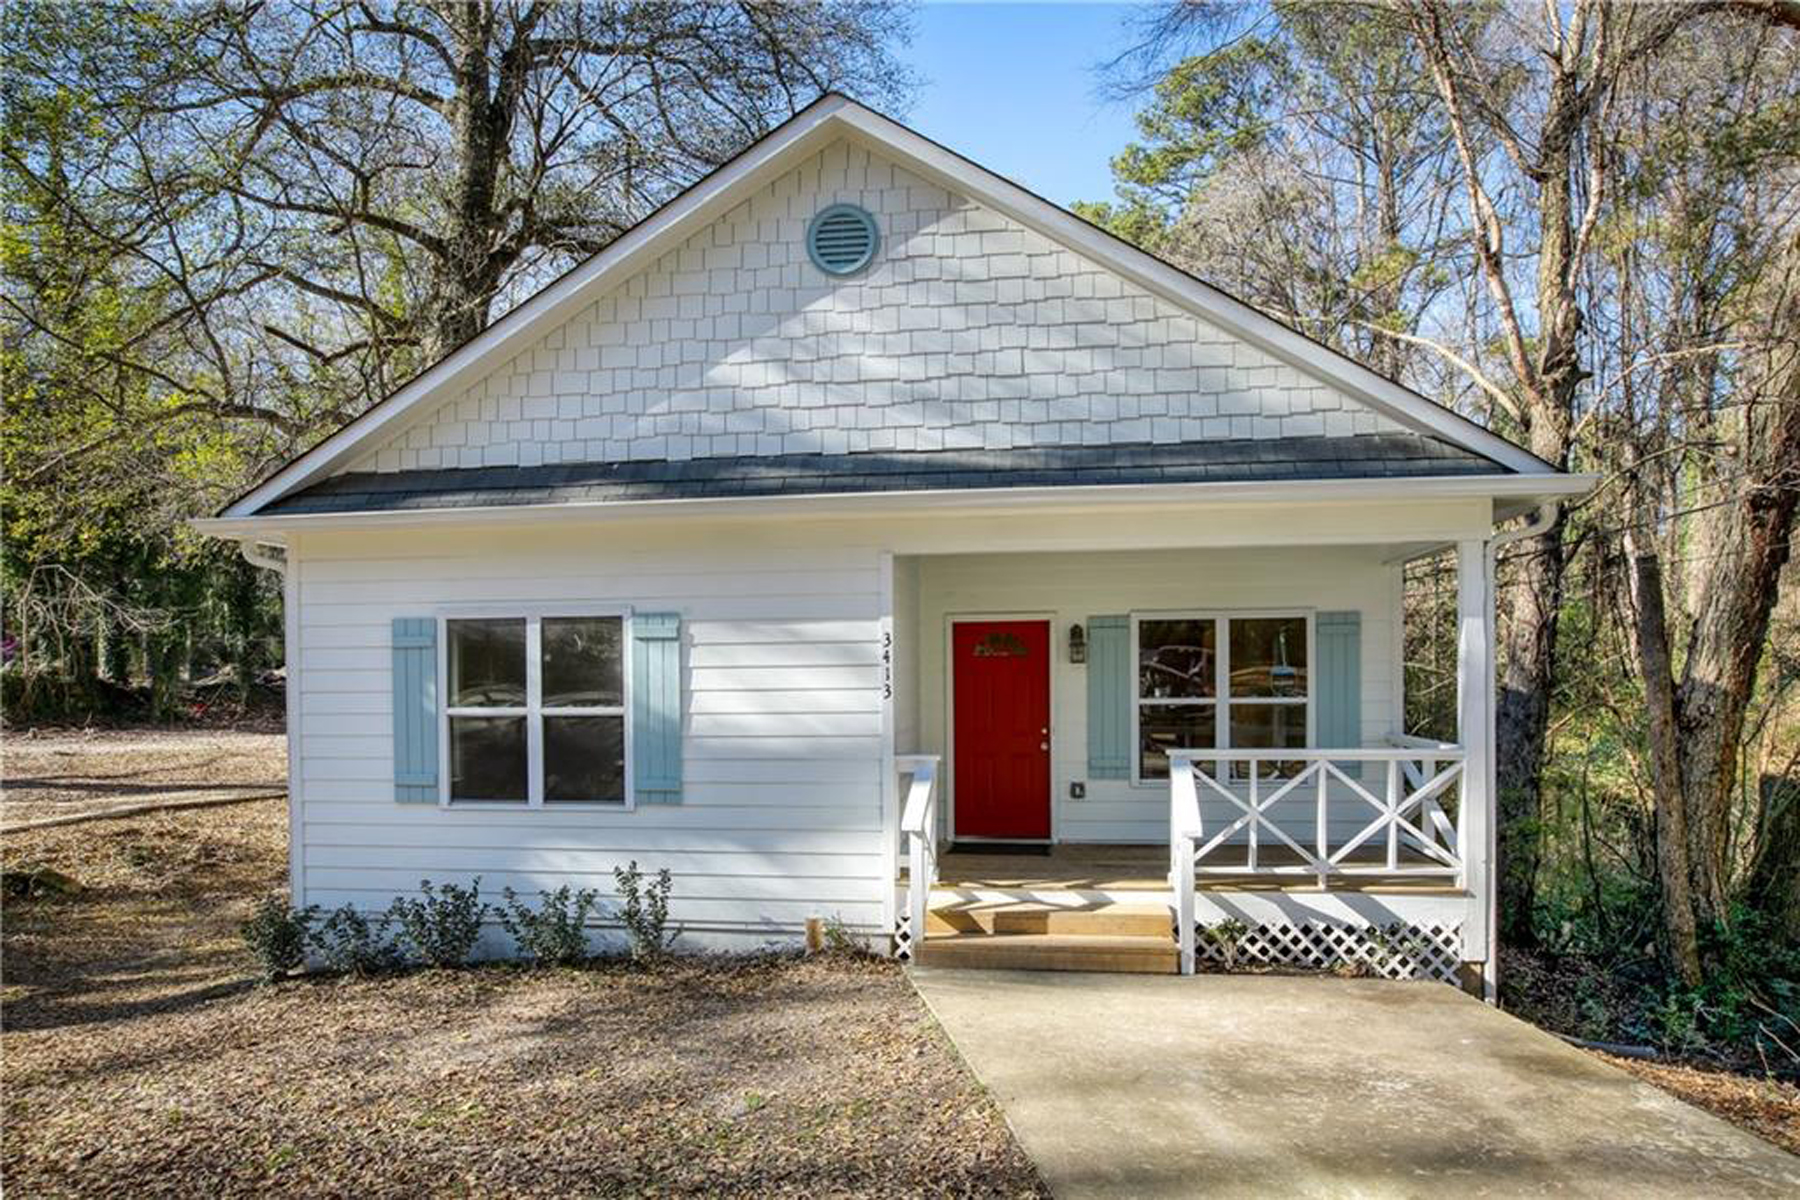 Single Family Home for Sale at Renovated Stunner In Fabulous West End 3413 Lake Valley Road NW Atlanta, Georgia 30331 United States